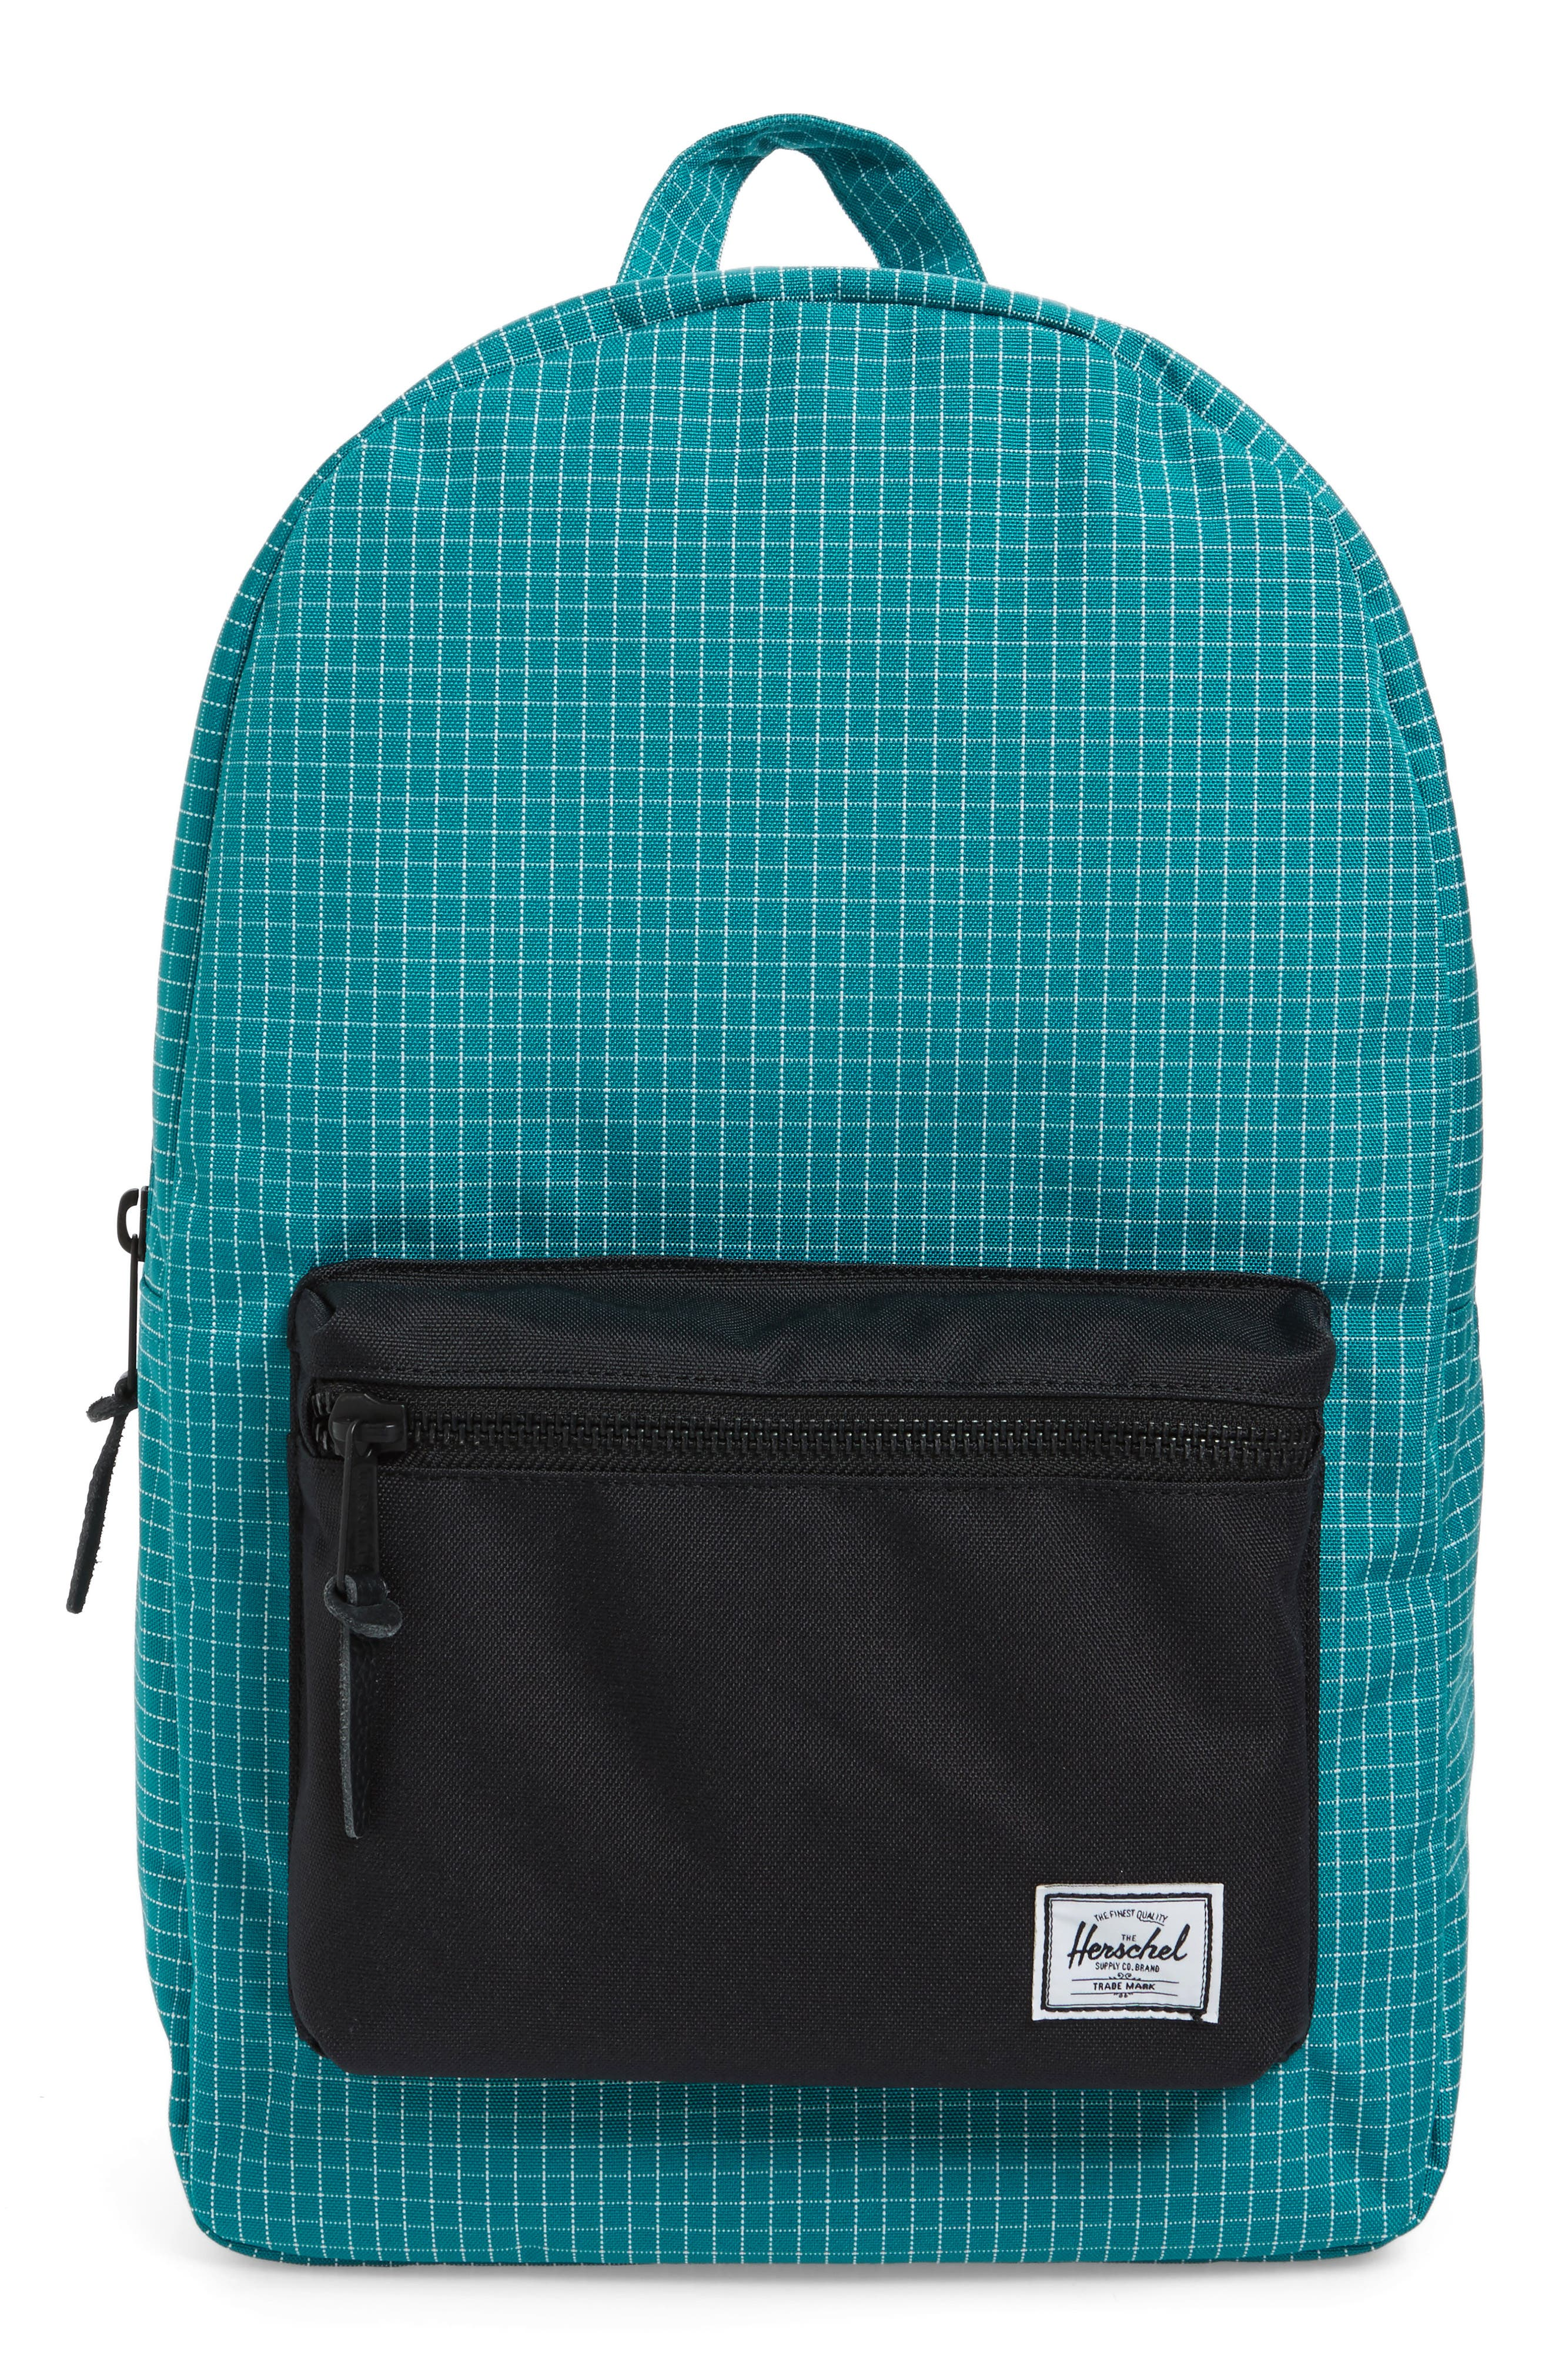 Alternate Image 1 Selected - Herschel Supply Co. Pop Quiz Backpack